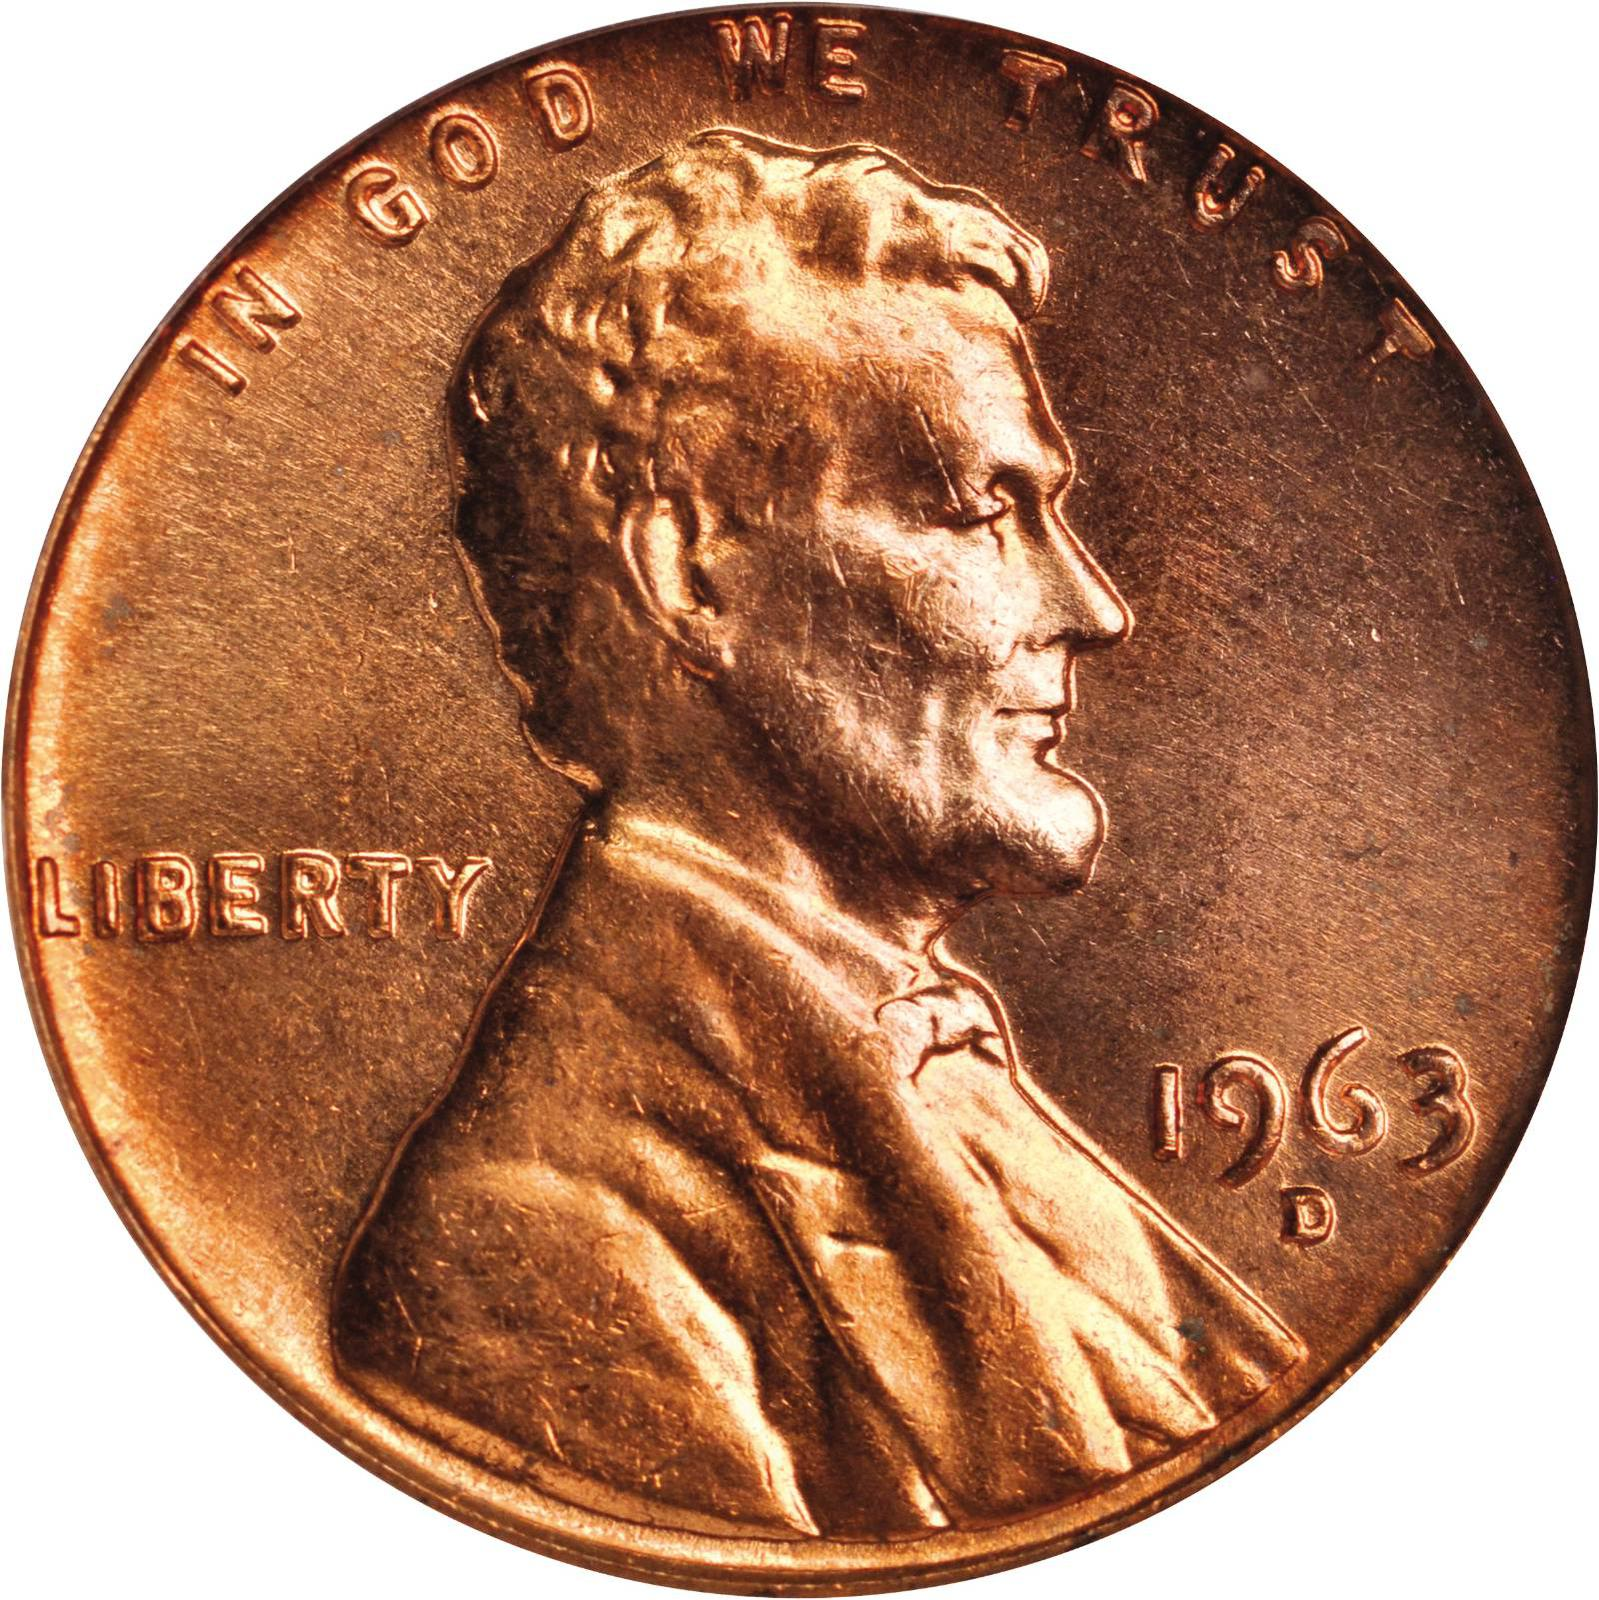 Value Of 1963 D Lincoln Cents We Appraise Modern Coins